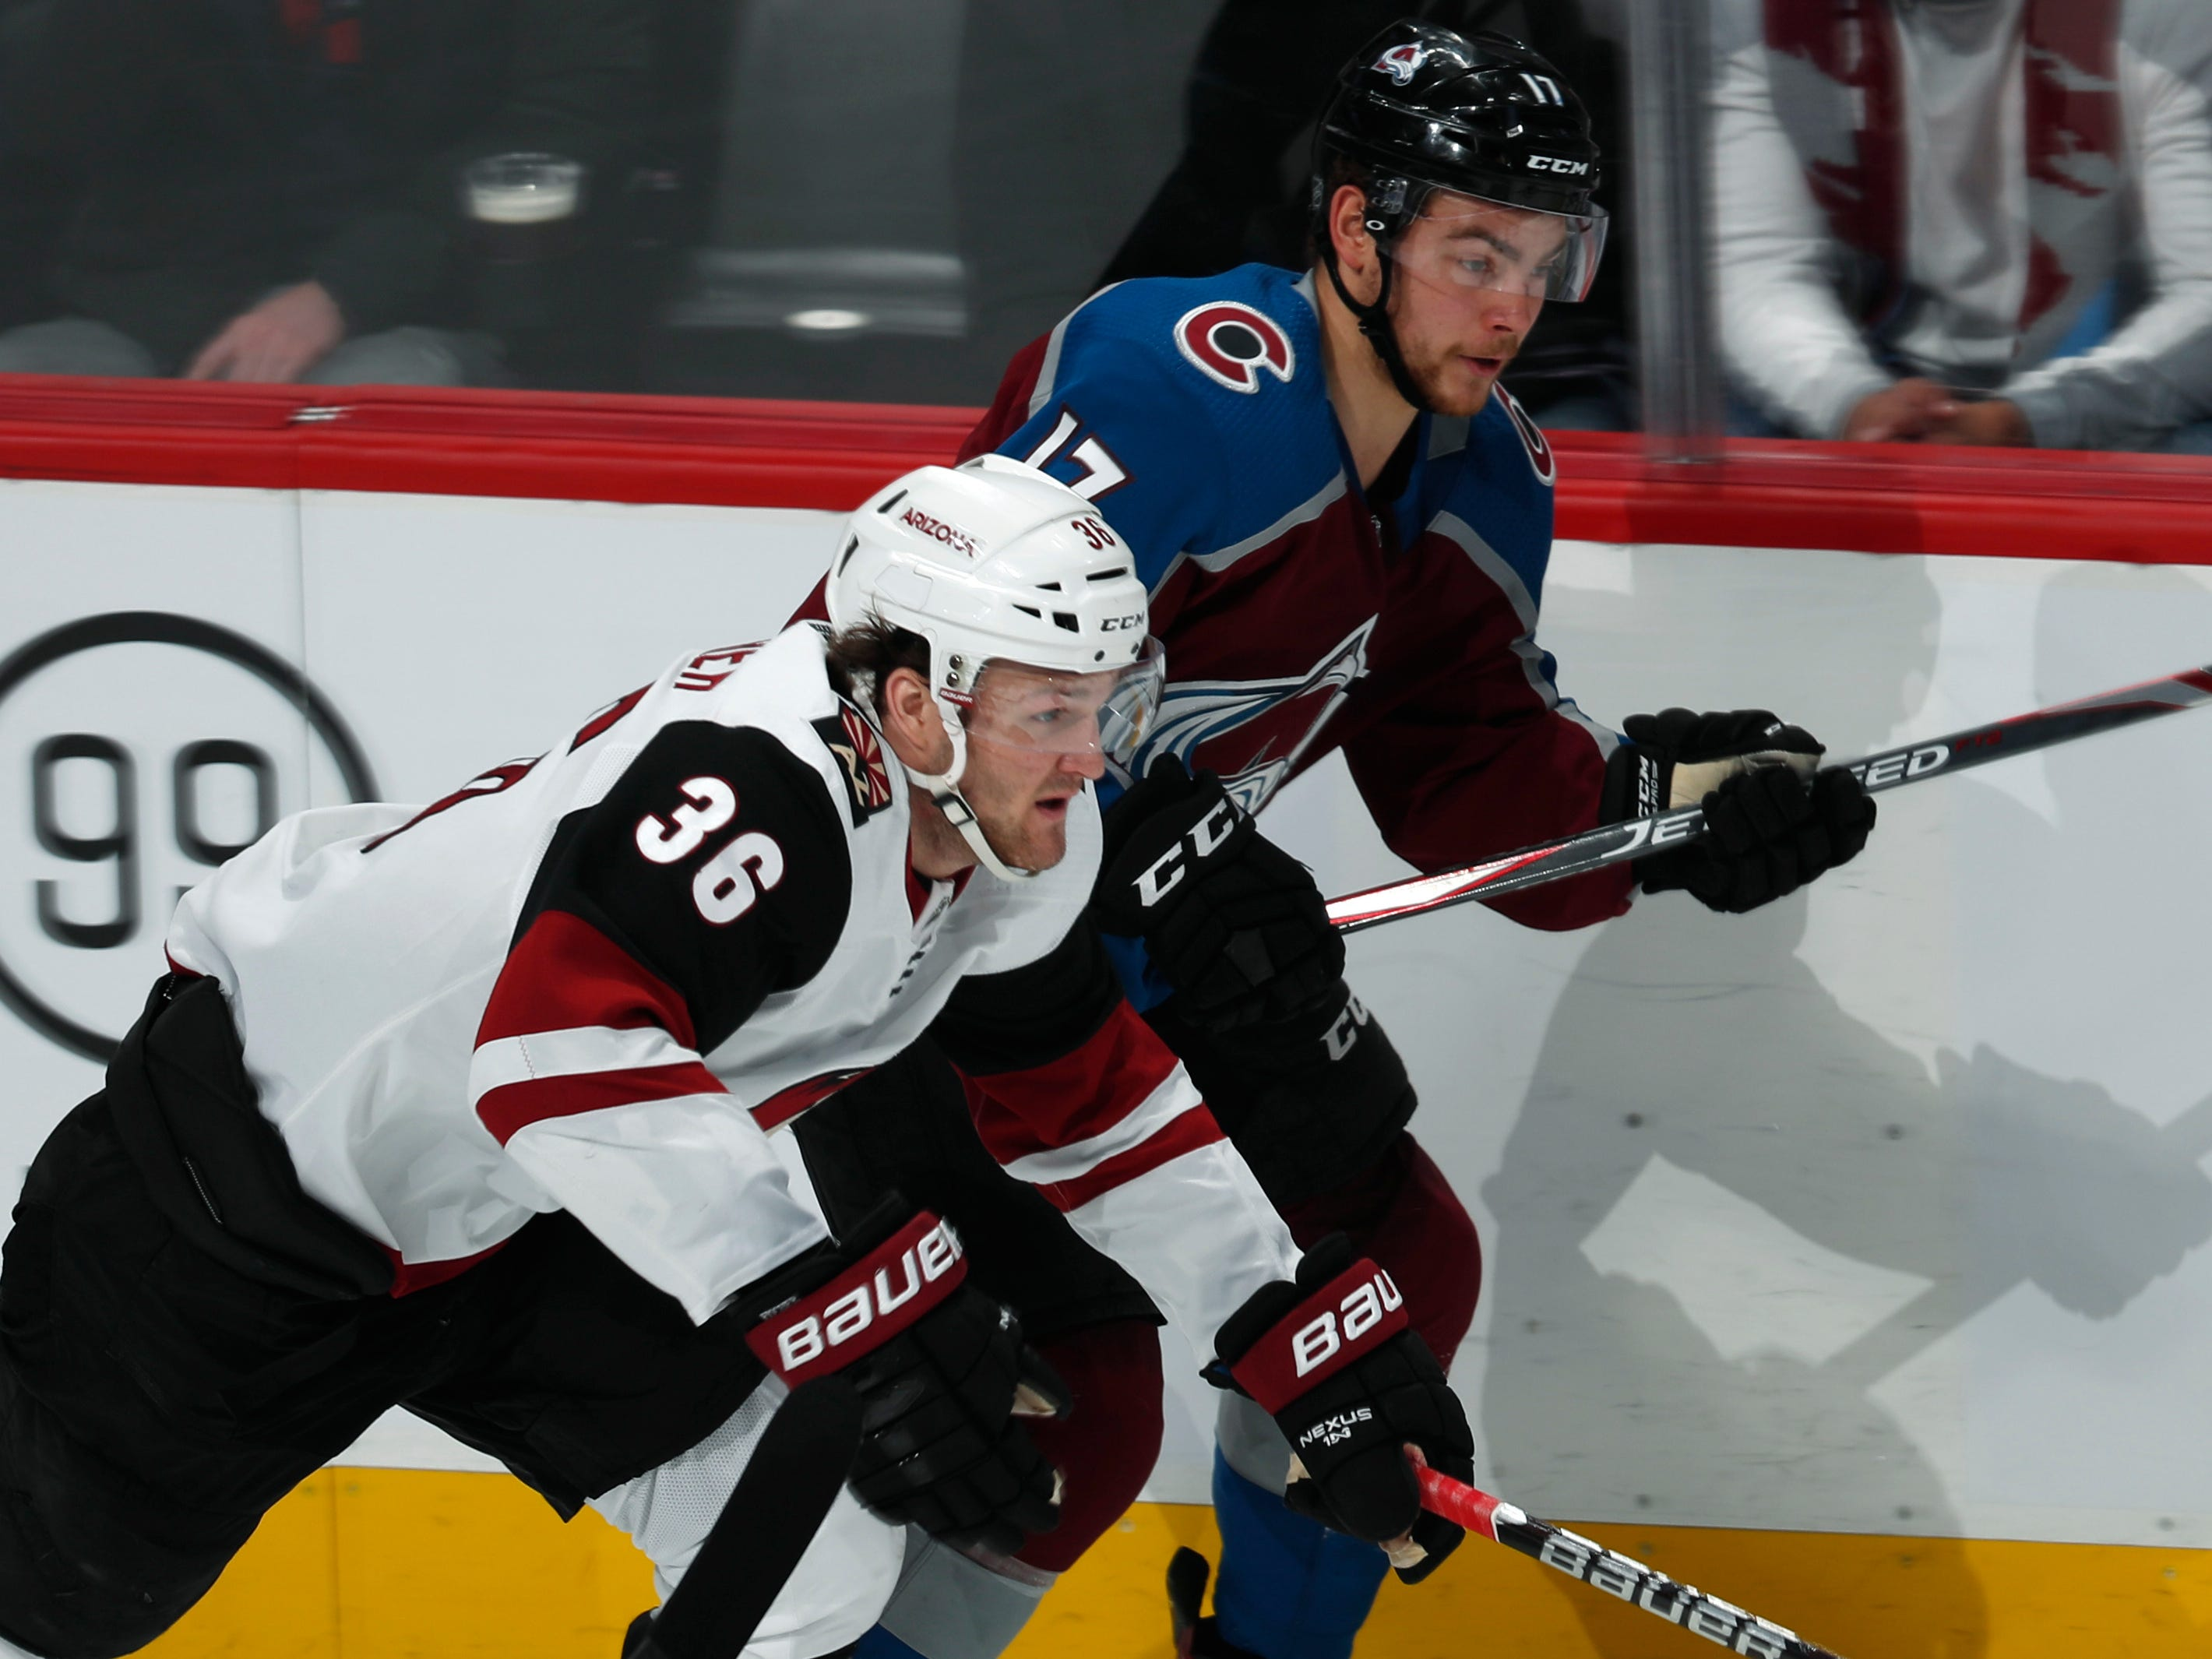 Arizona Coyotes right wing Christian Fischer, front, pursues the puck with Colorado Avalanche center Tyson Jost in the first period of an NHL hockey game Friday, March 29, 2019, in Denver.